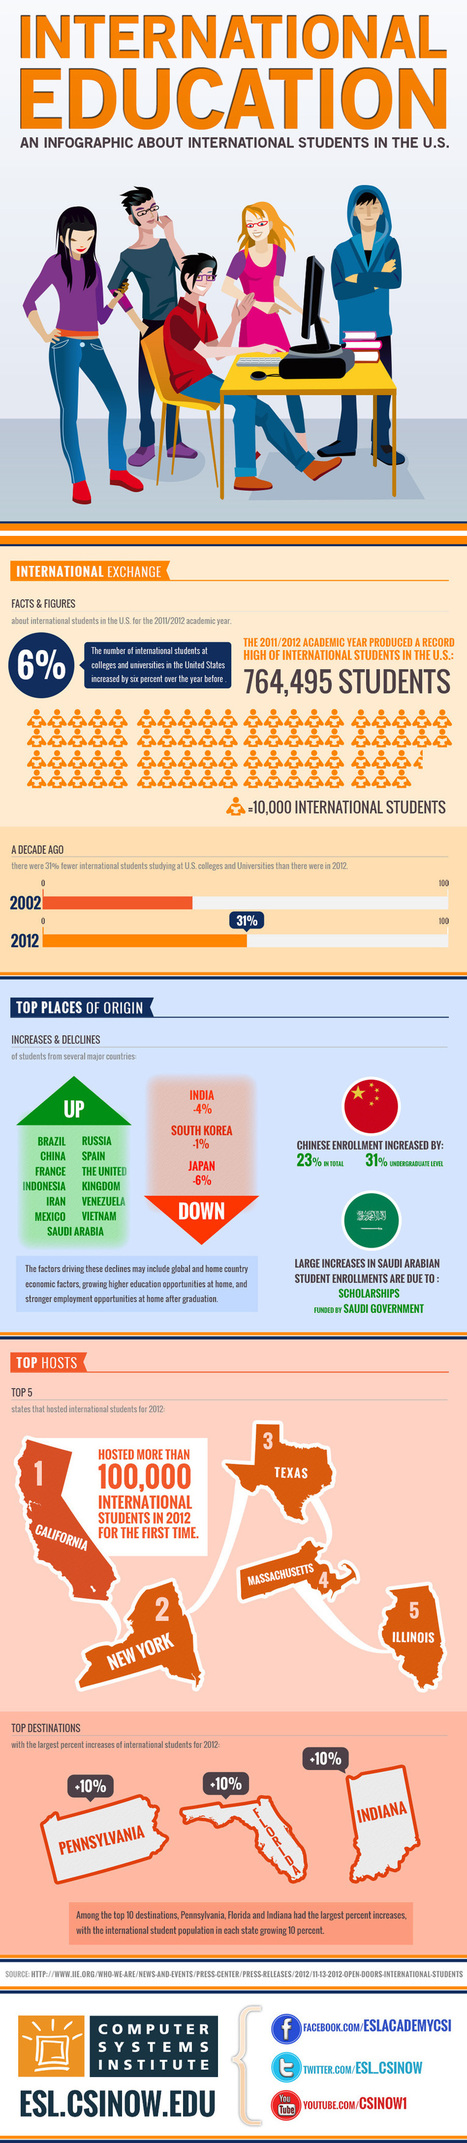 International Education: An Infographic About International Students in the US   Aprendiendo a Distancia   Scoop.it